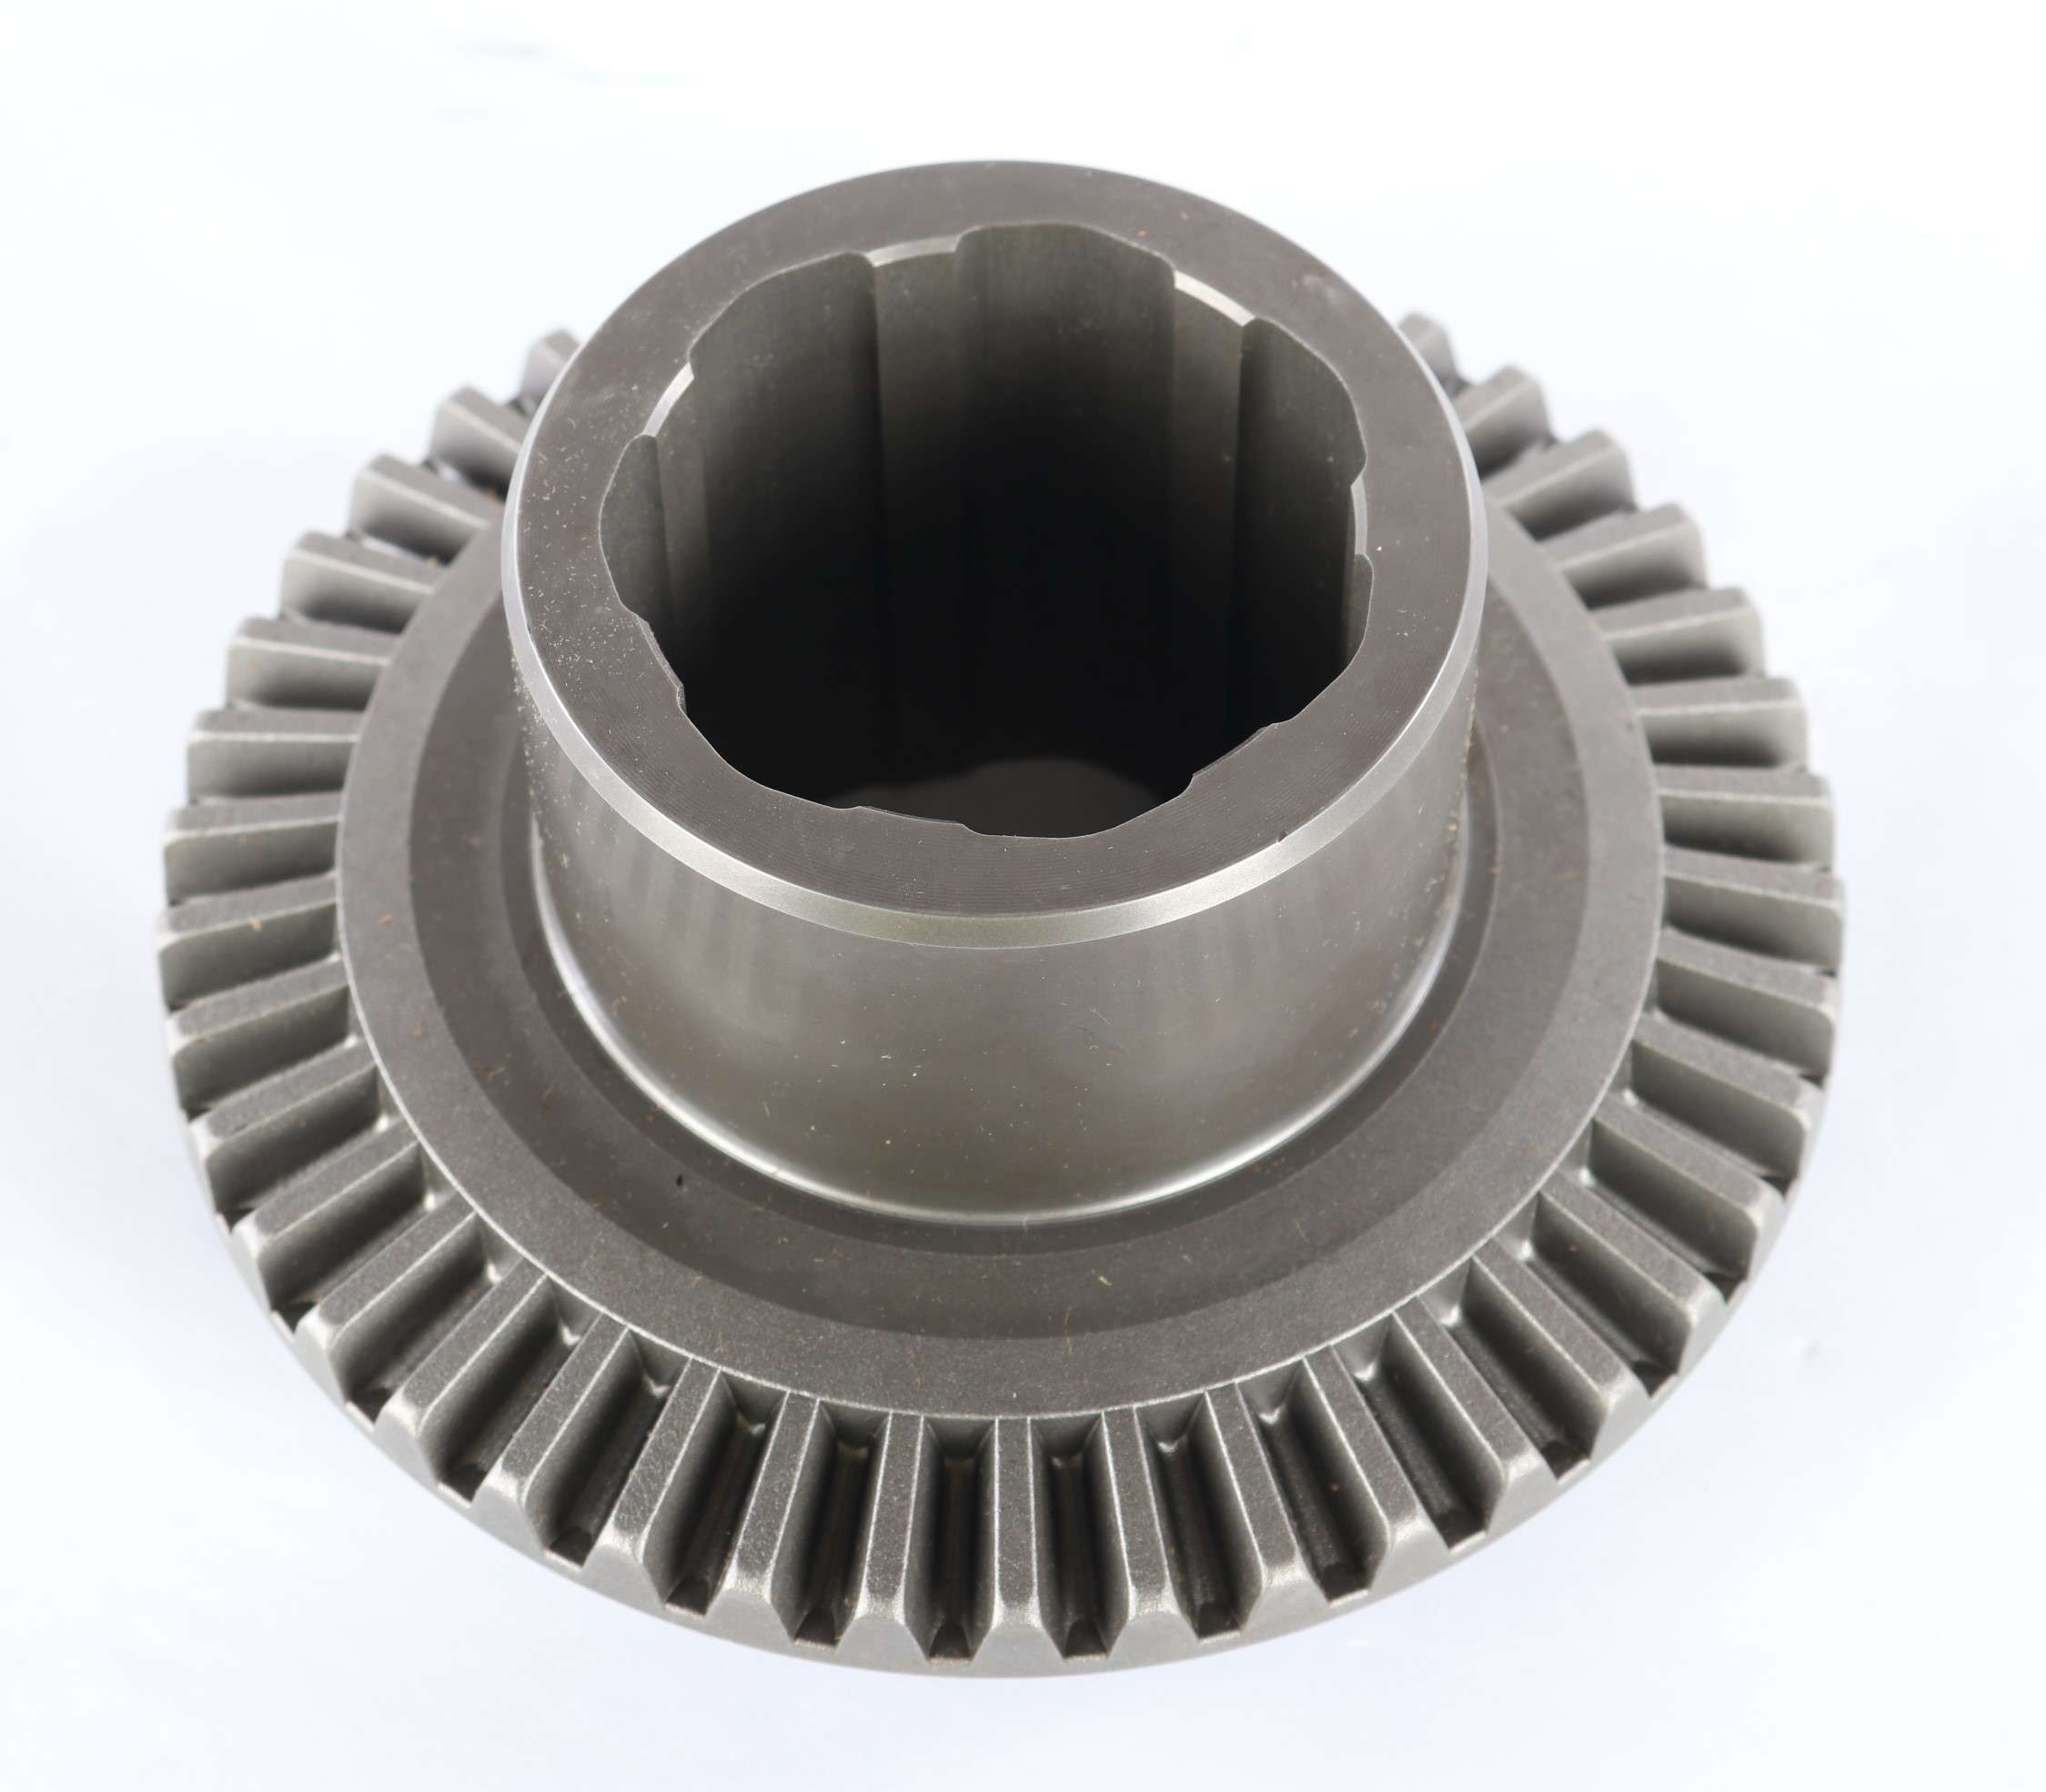 Ingersoll Rand Club Car Parts From Ingersoll Rand Club Car Clutch Hsgring Gear Of Ingersoll Rand Club Car Parts